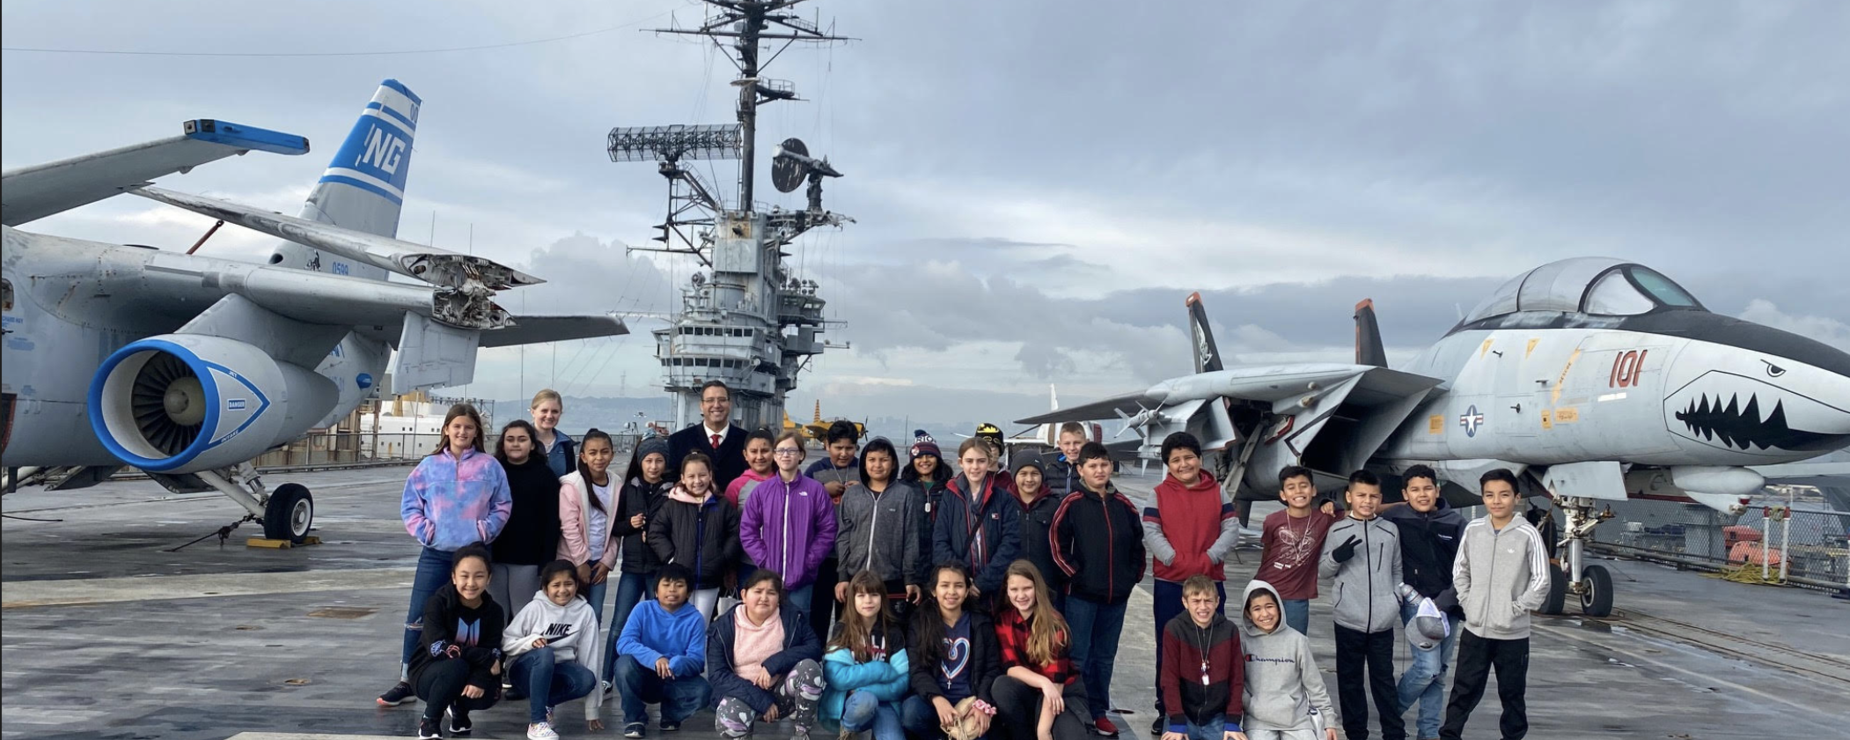 Combined Collegeville/Farmington 5th grade field trip to USS Hornet